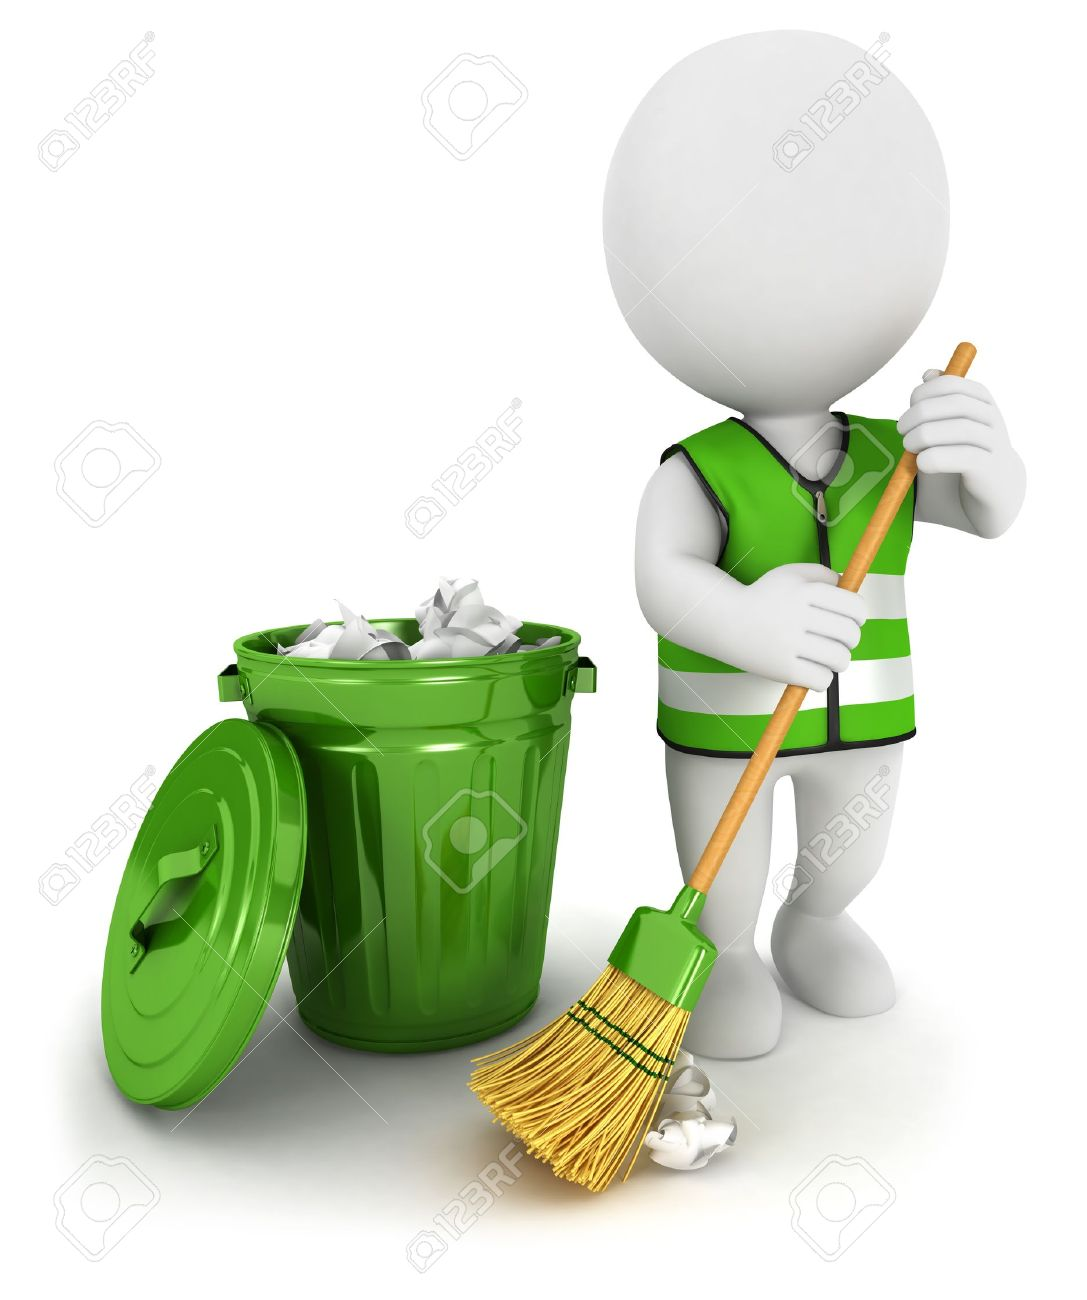 3d White People Street Sweeper And A Trash Can Isolated White 1087x1300